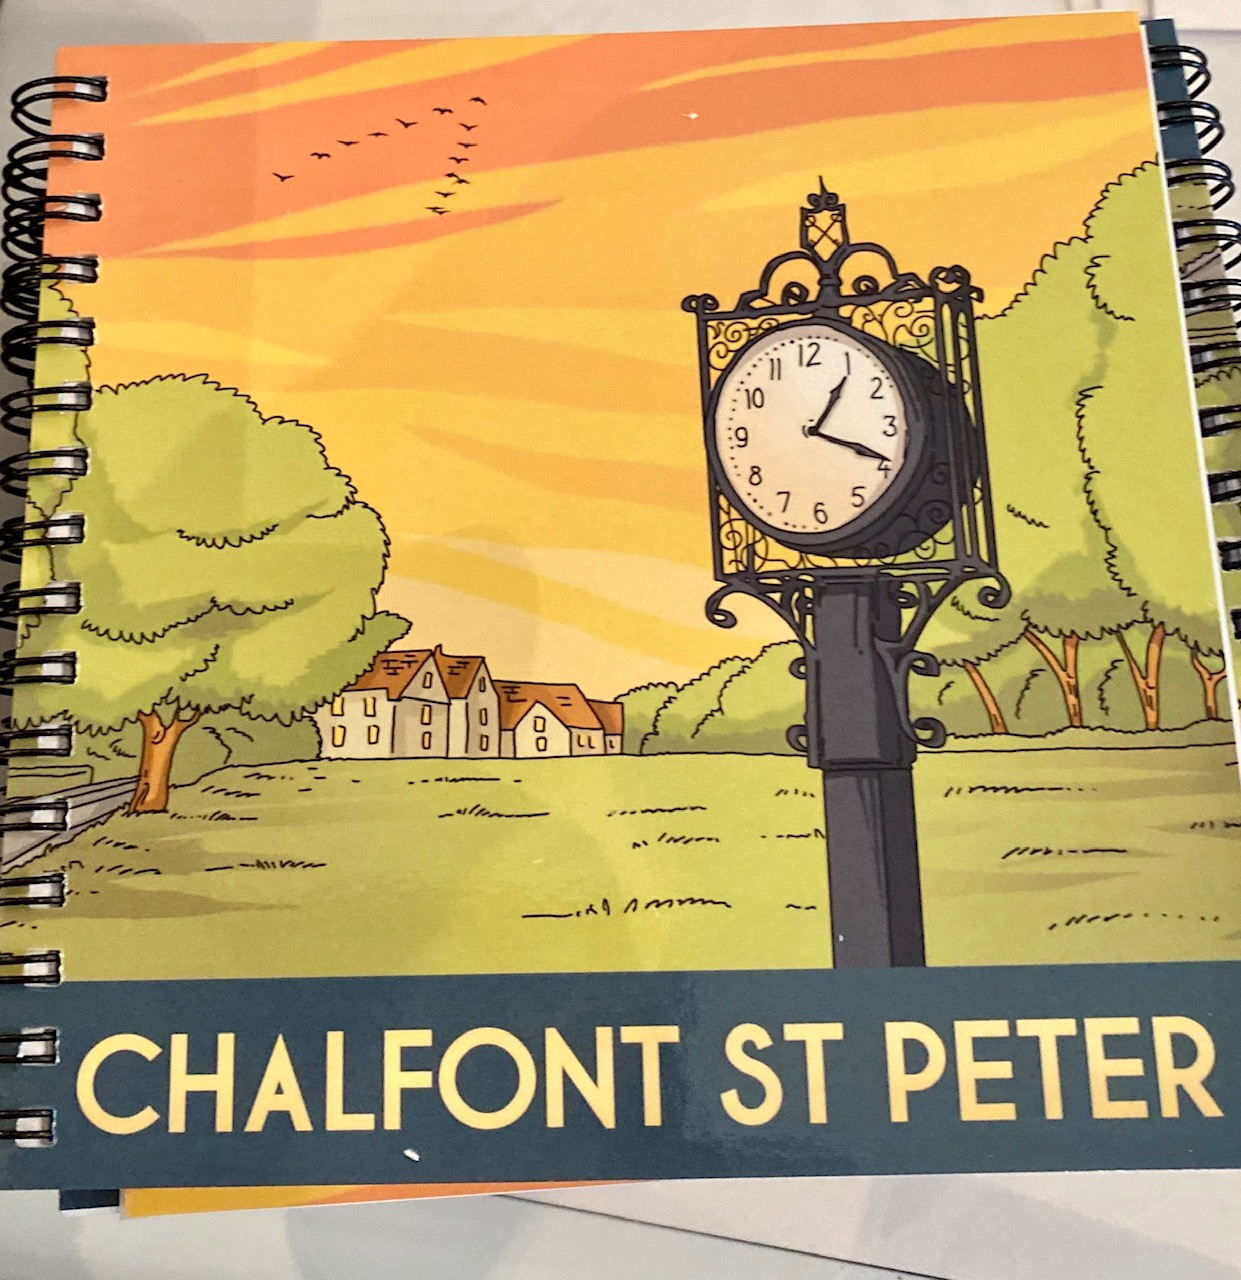 Chalfont St Peter vintage art square note book